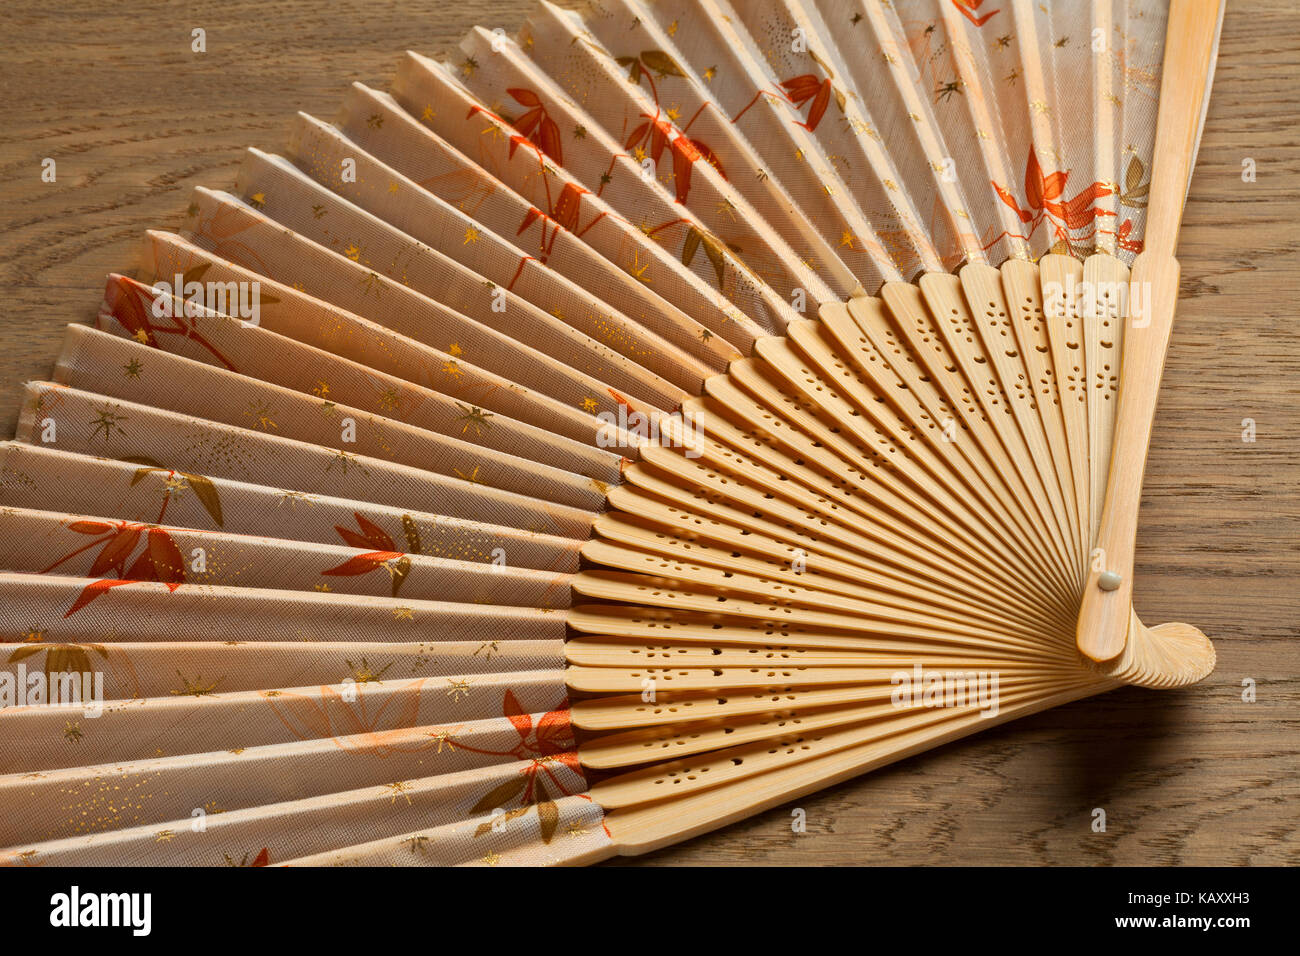 Traditional Japanese hand fan decorated with autumn maple leaves - Stock Image